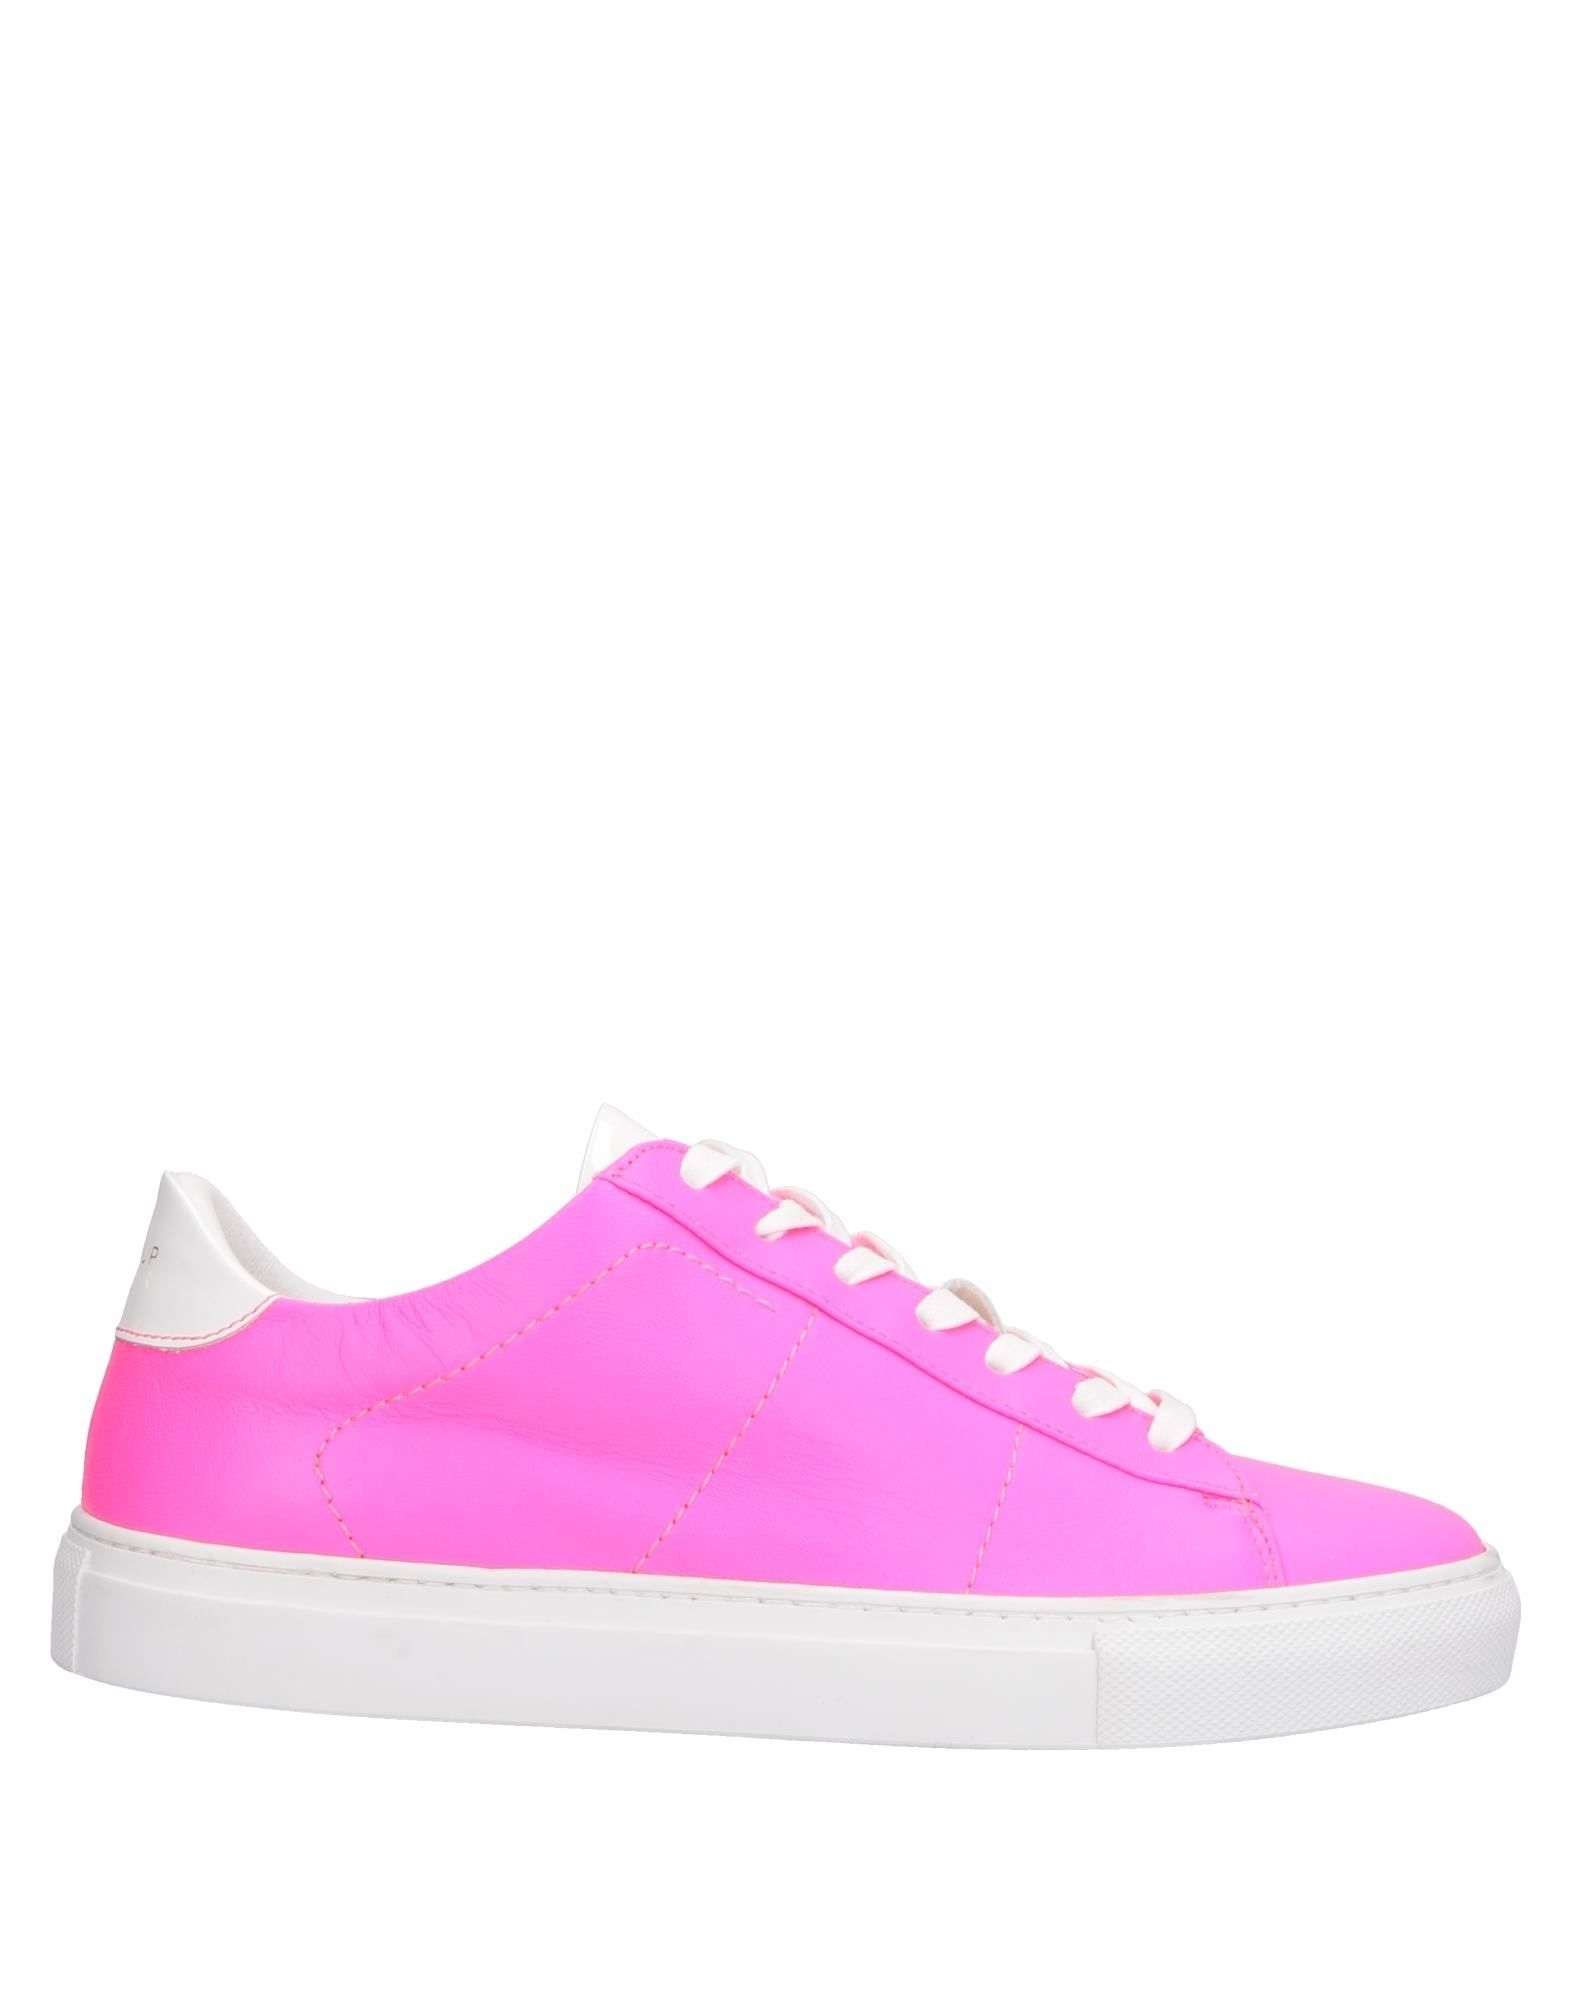 Dondup on Sneakers - Women Dondup Sneakers online on Dondup  Canada - 11578645BS 63fad8